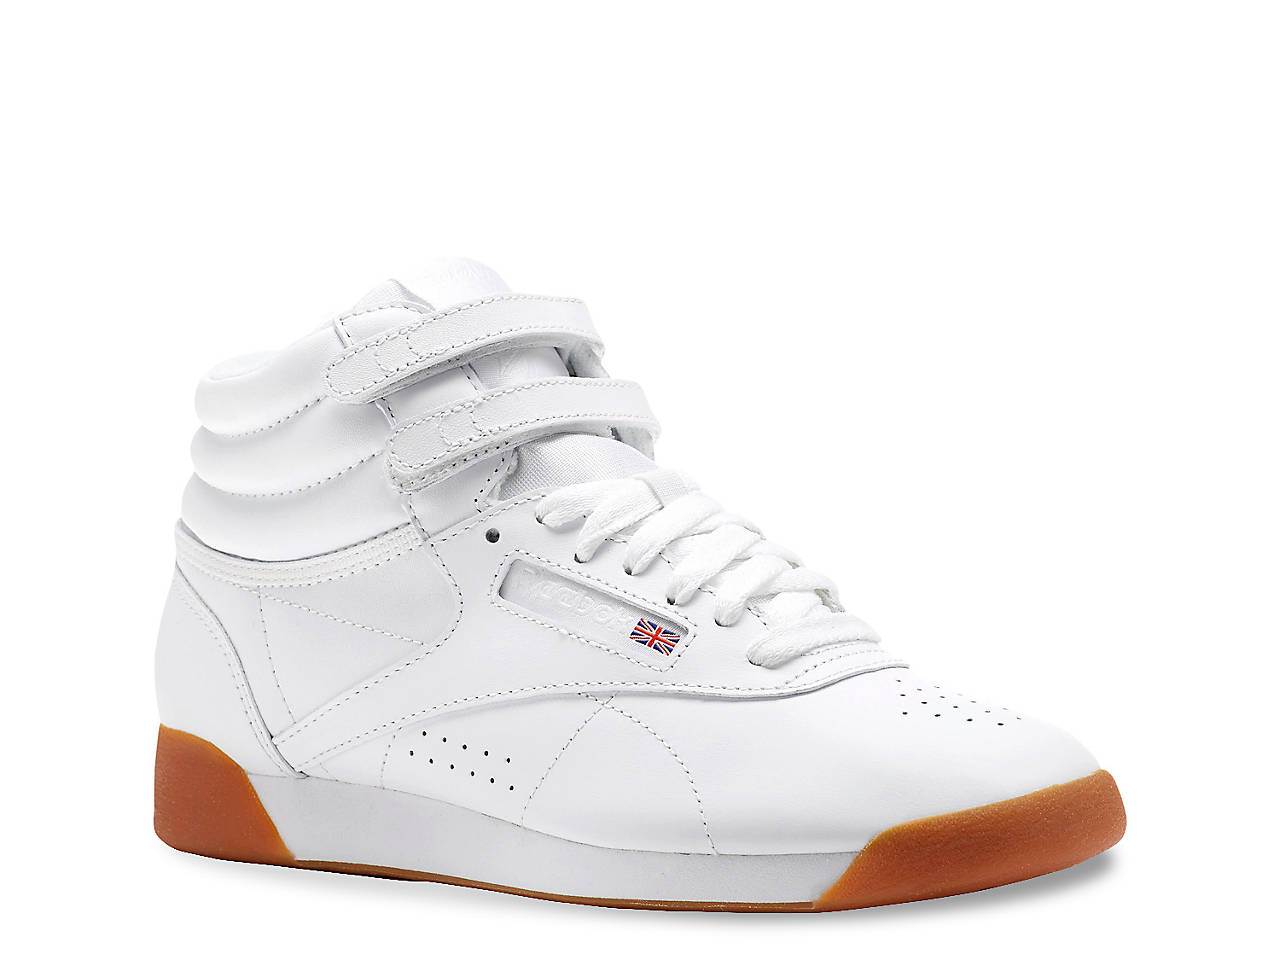 7d2b2e86 Freestyle Hi High-Top Sneaker - Women's